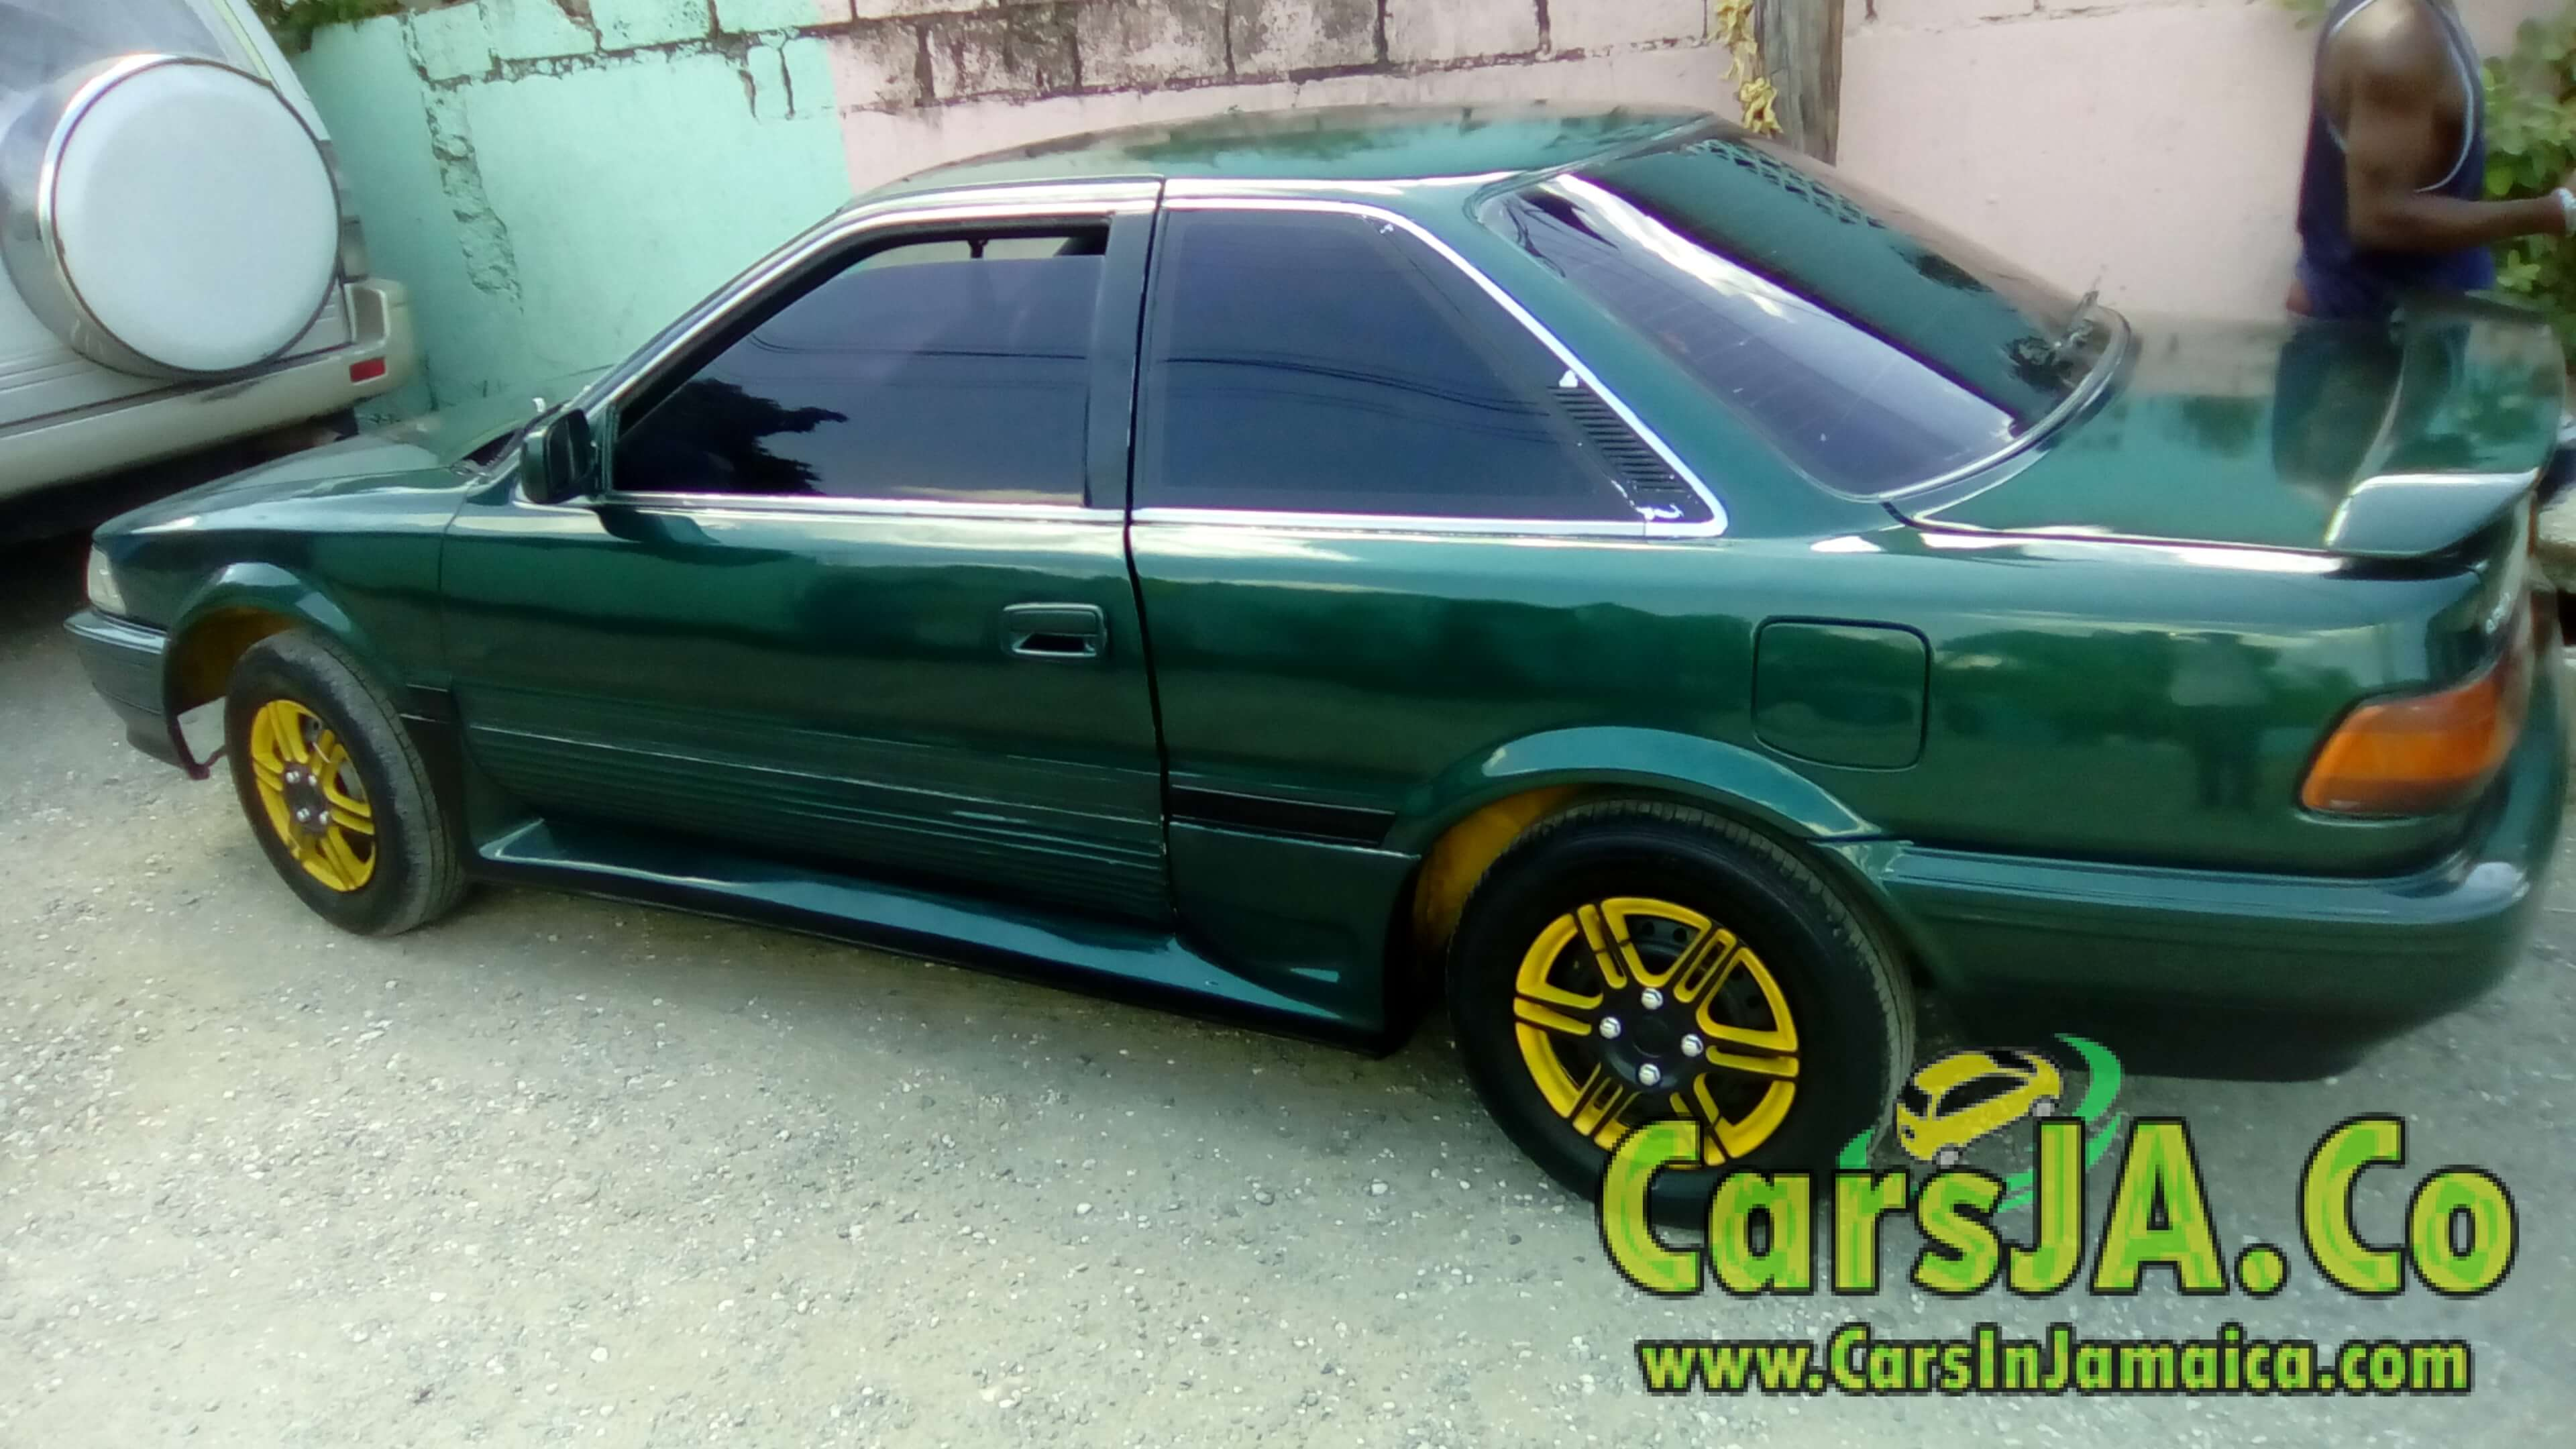 Auto For Sale Jamaica: Toyota Levin For Sale In Jamaica